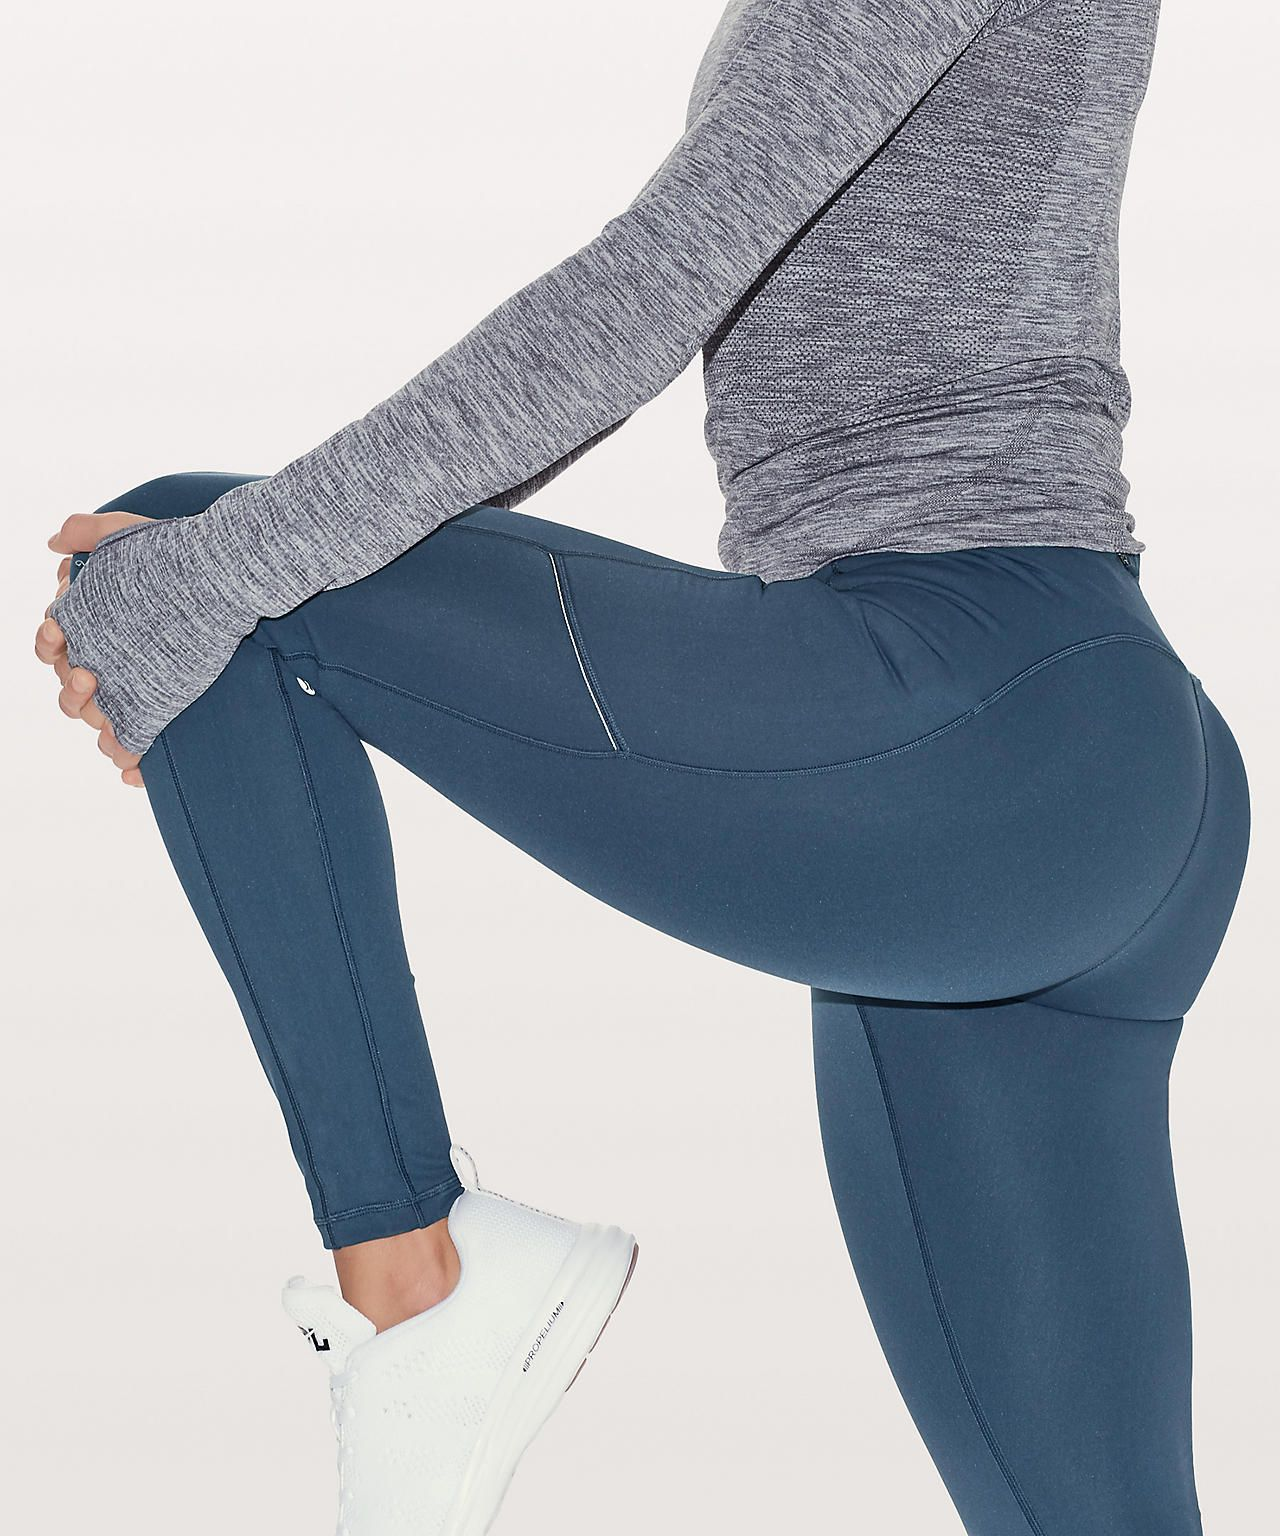 Mineral Blue Tech fleece, Pants for women, Tights